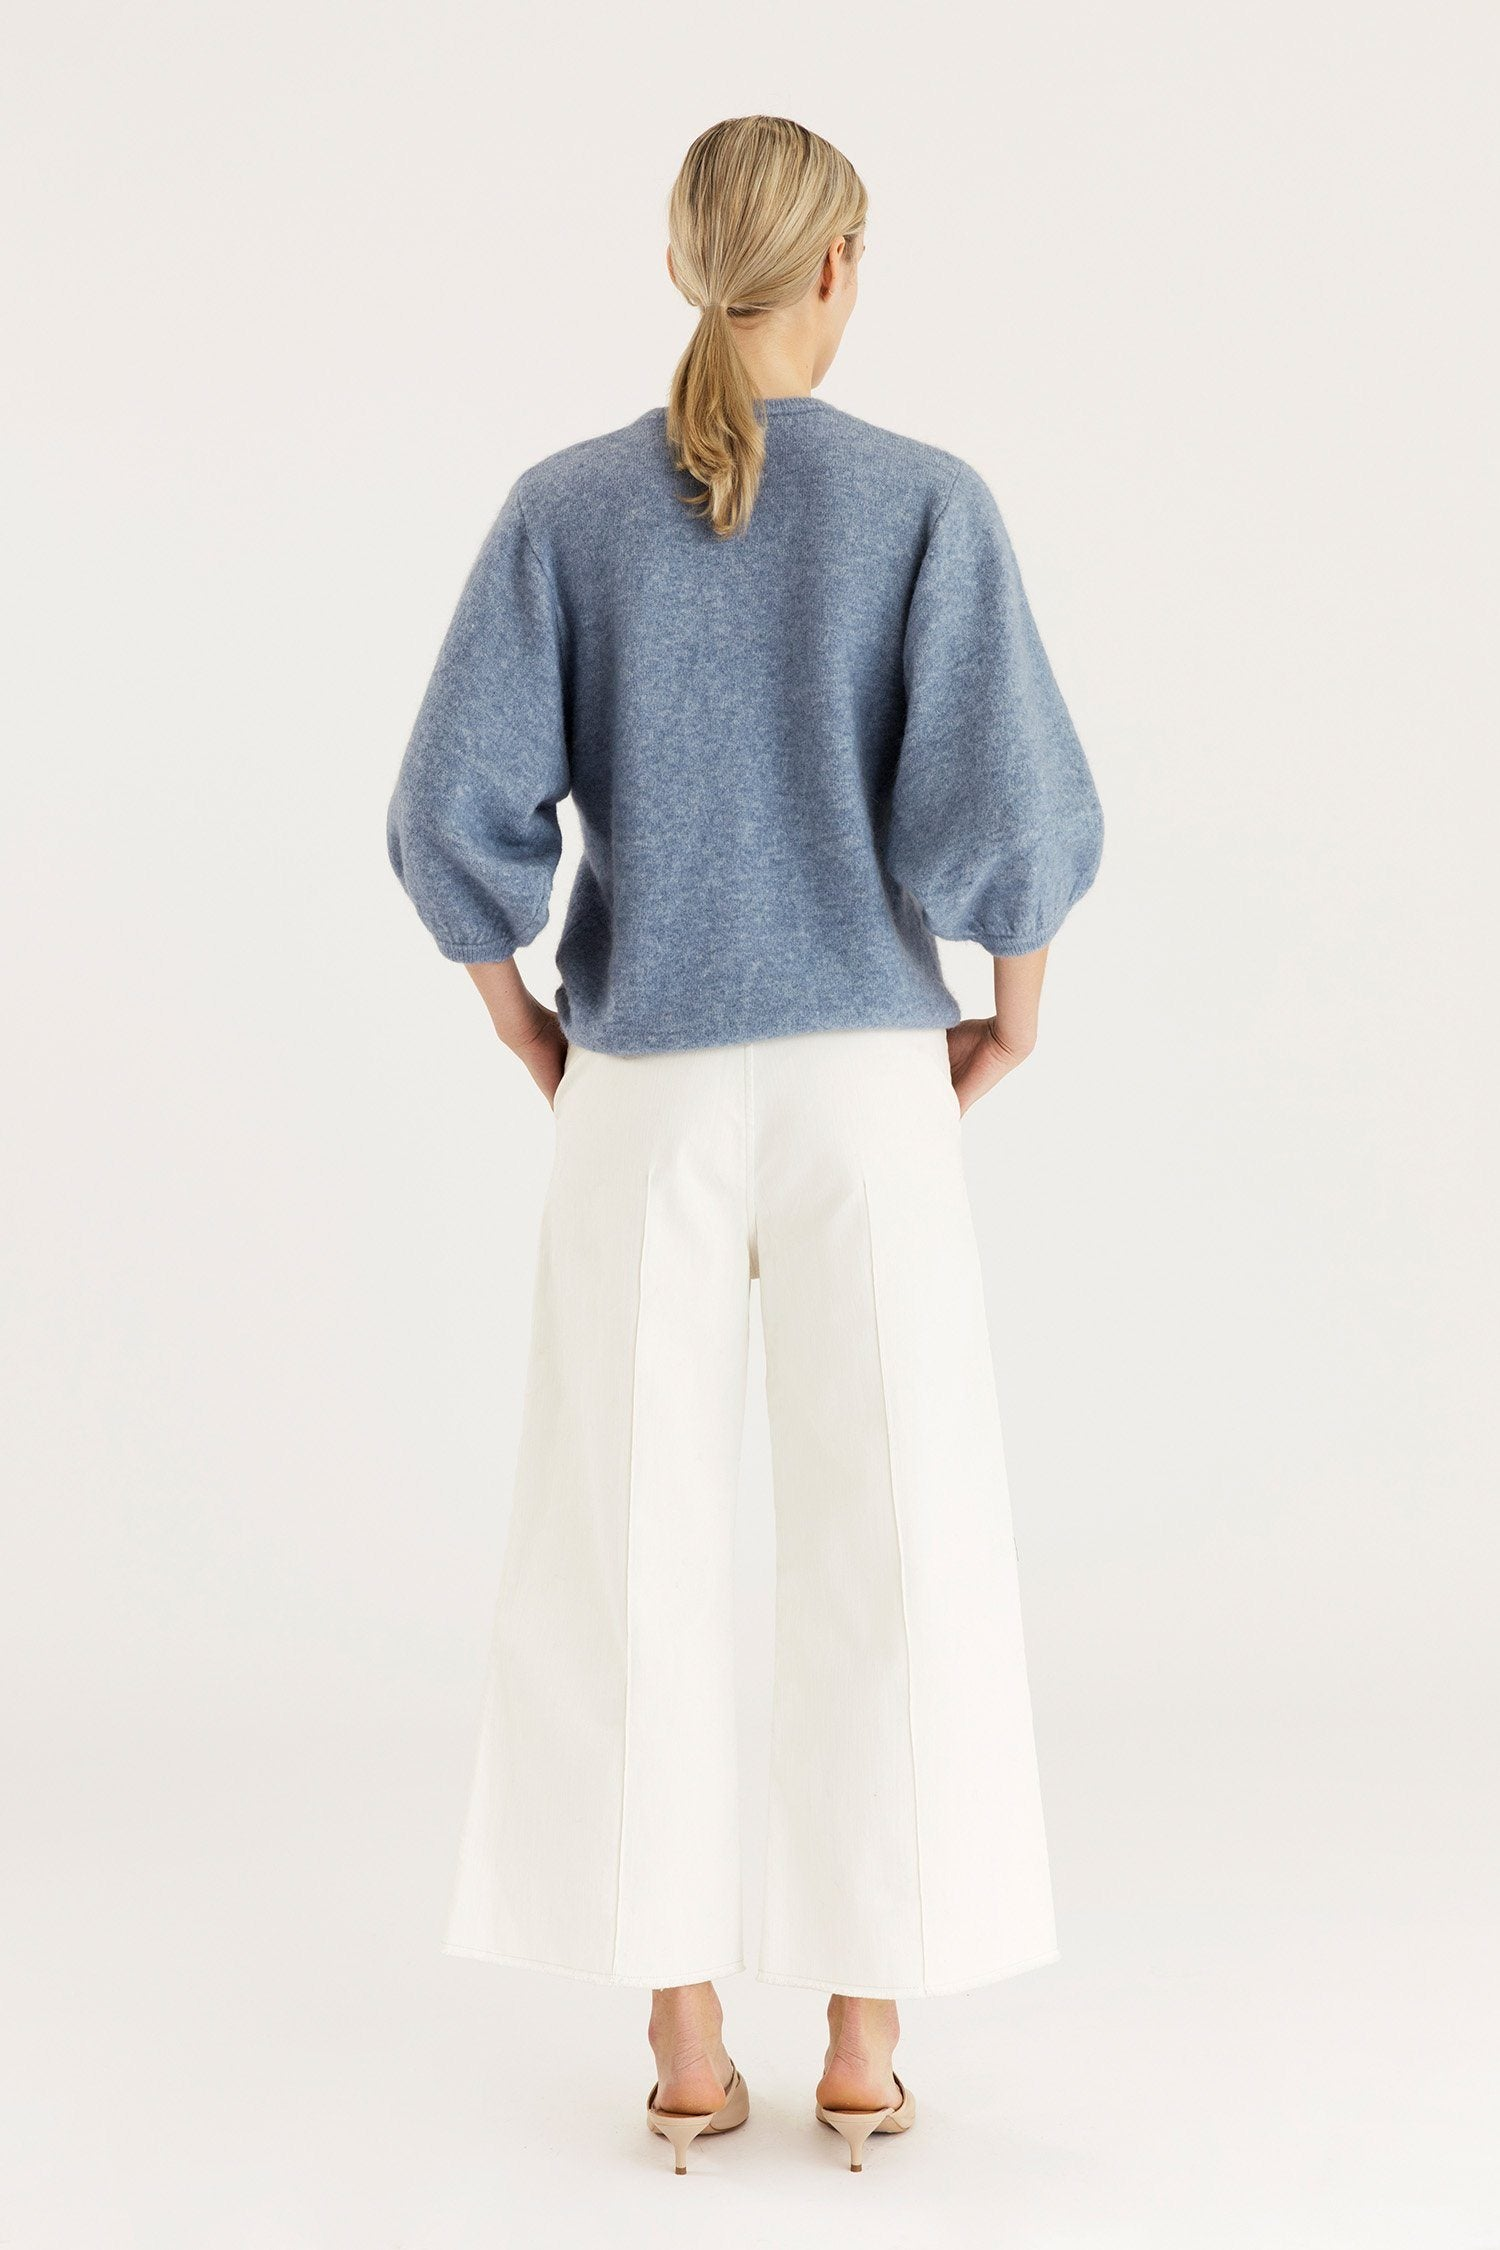 ELLA SWEATER - LIGHT BLUE Sweater Stylein